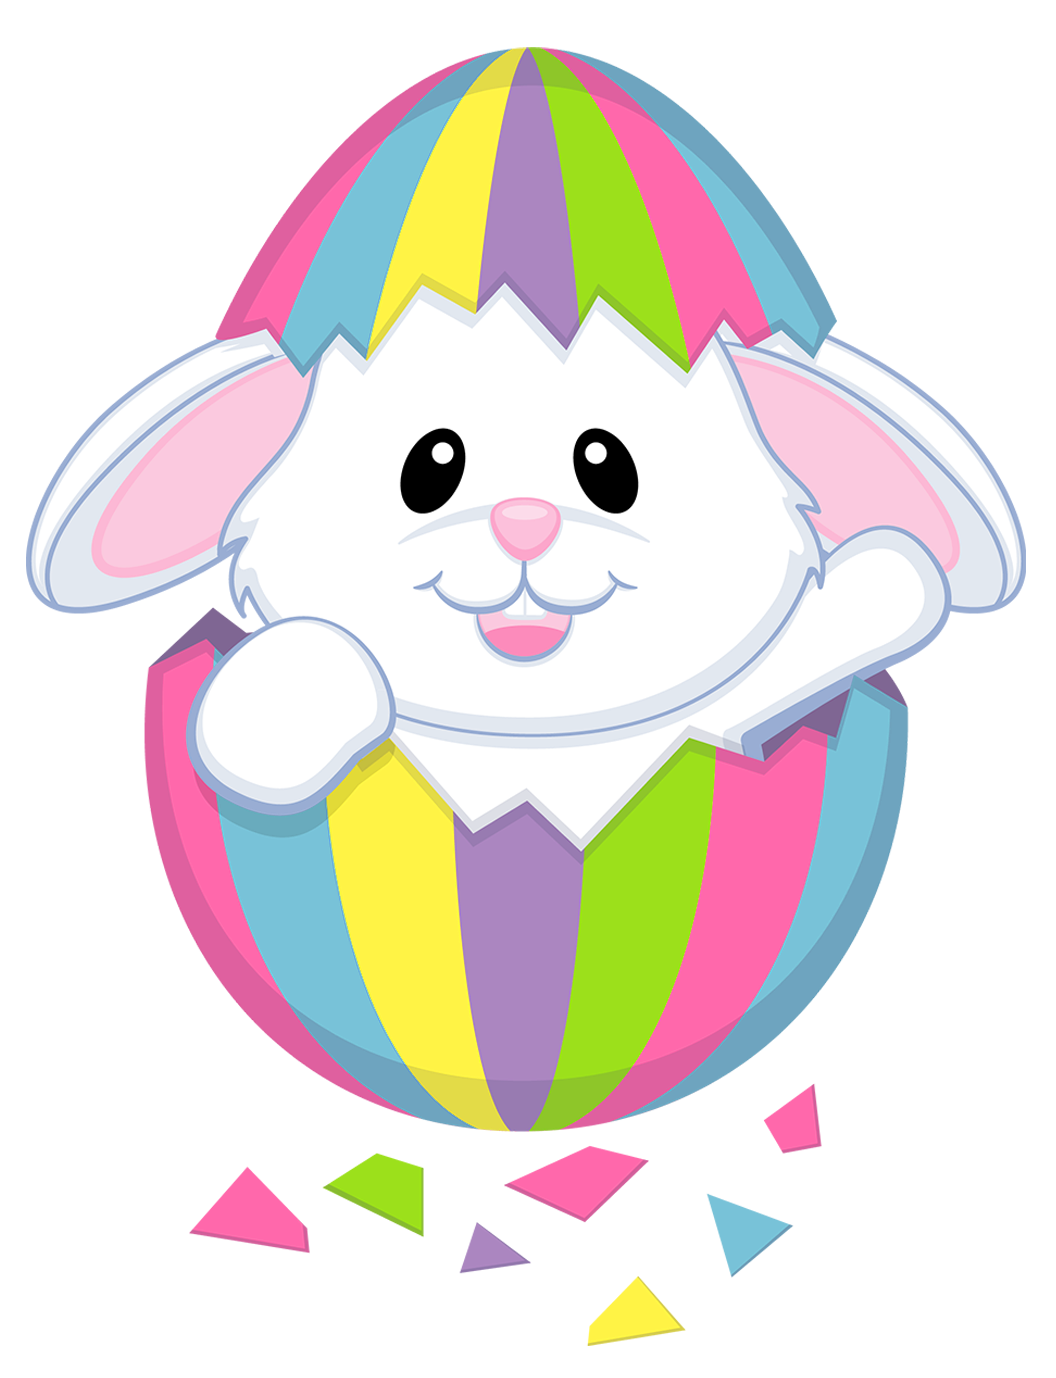 easter bunny clipart best easter eggs pinterest easter bunny rh pinterest com  free easter bunny clipart images